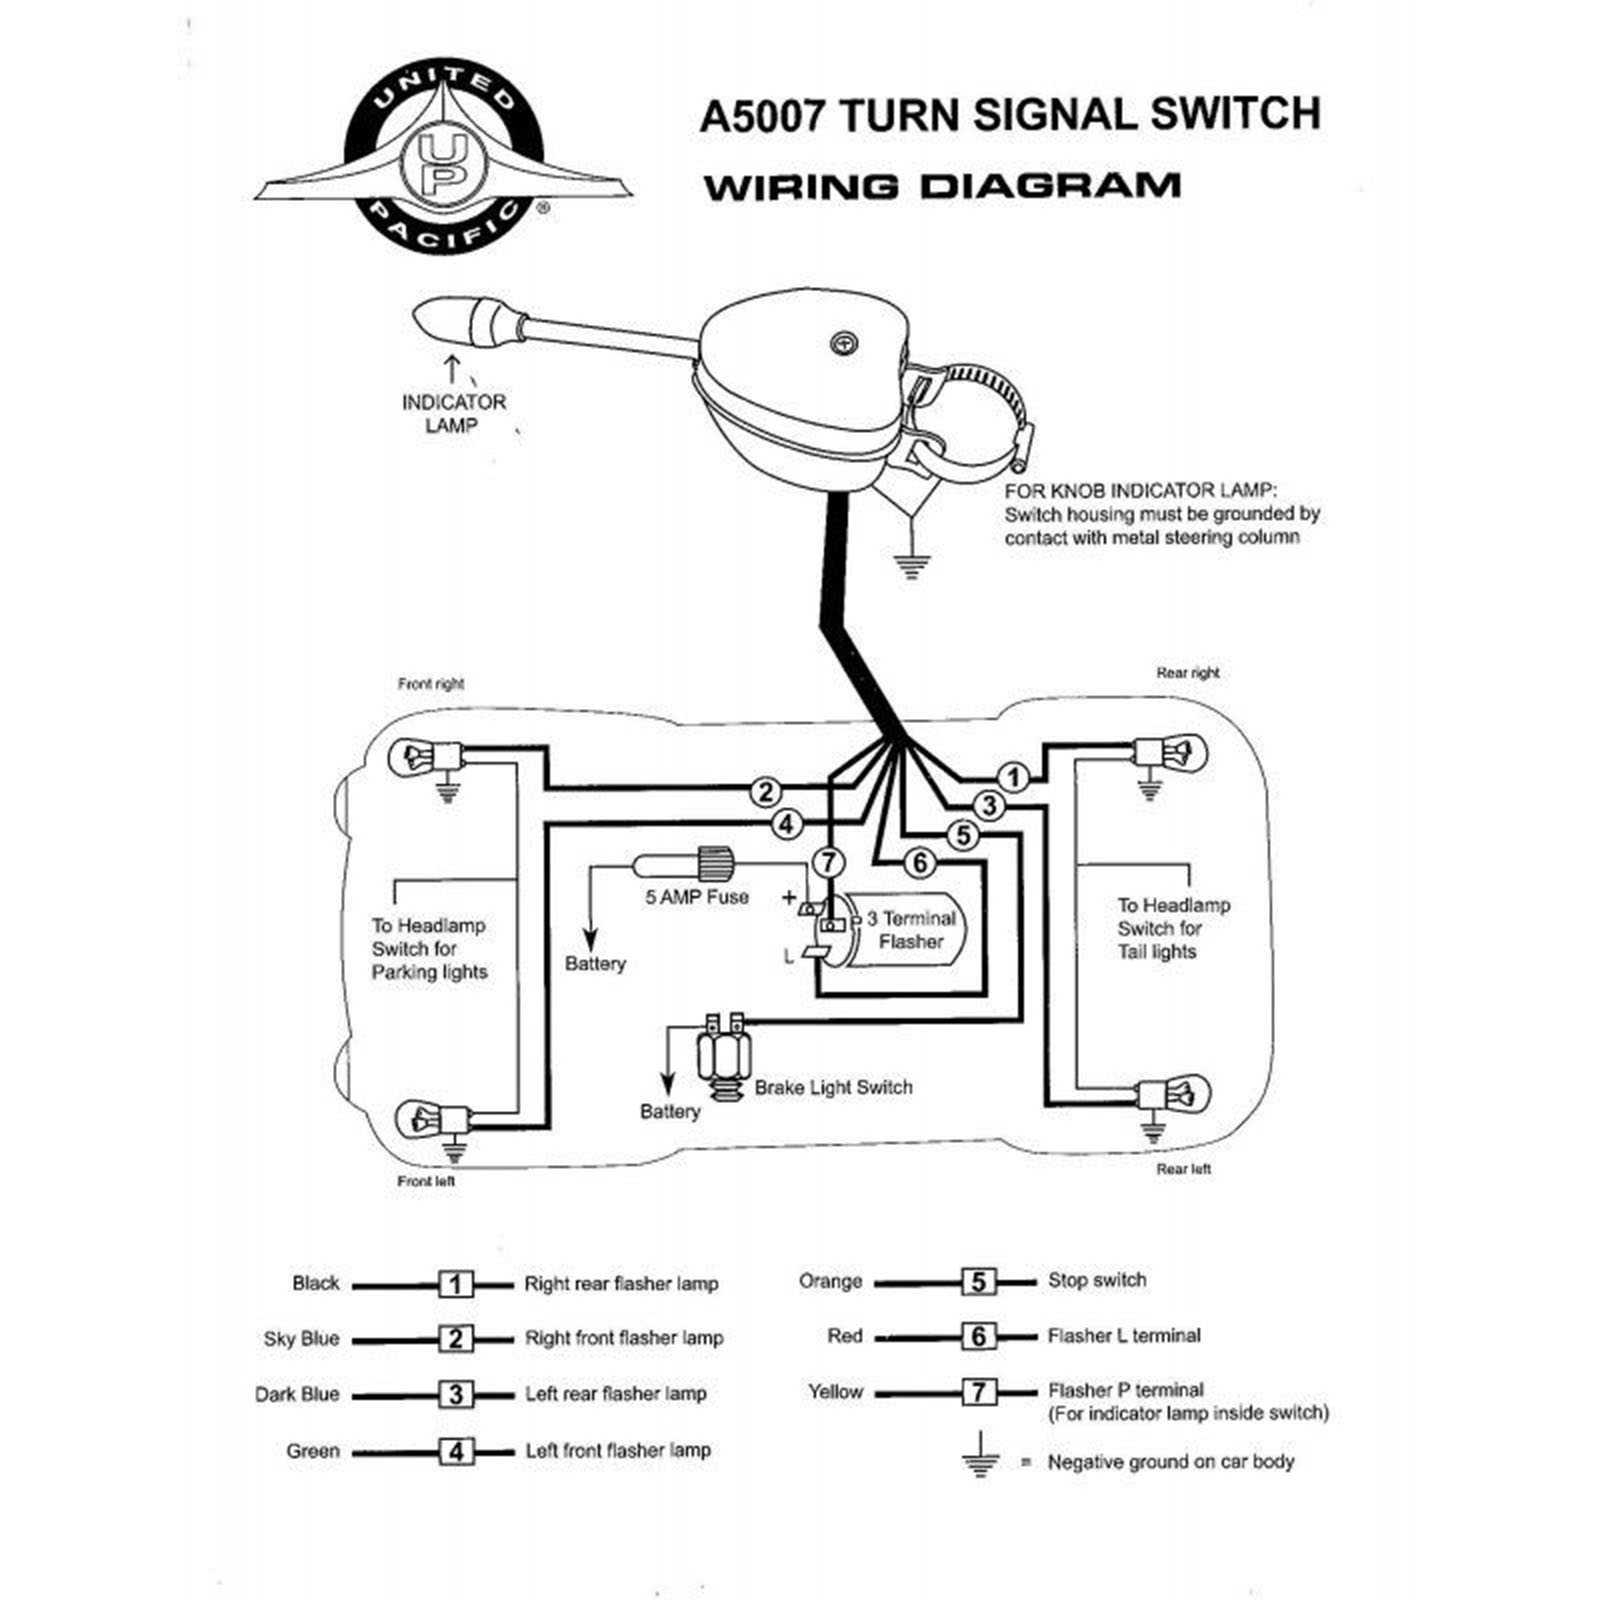 hight resolution of universal directional switch wiring diagram wiring diagram user vintage turn signal switch wiring diagram vintage turn signal switch wiring diagram